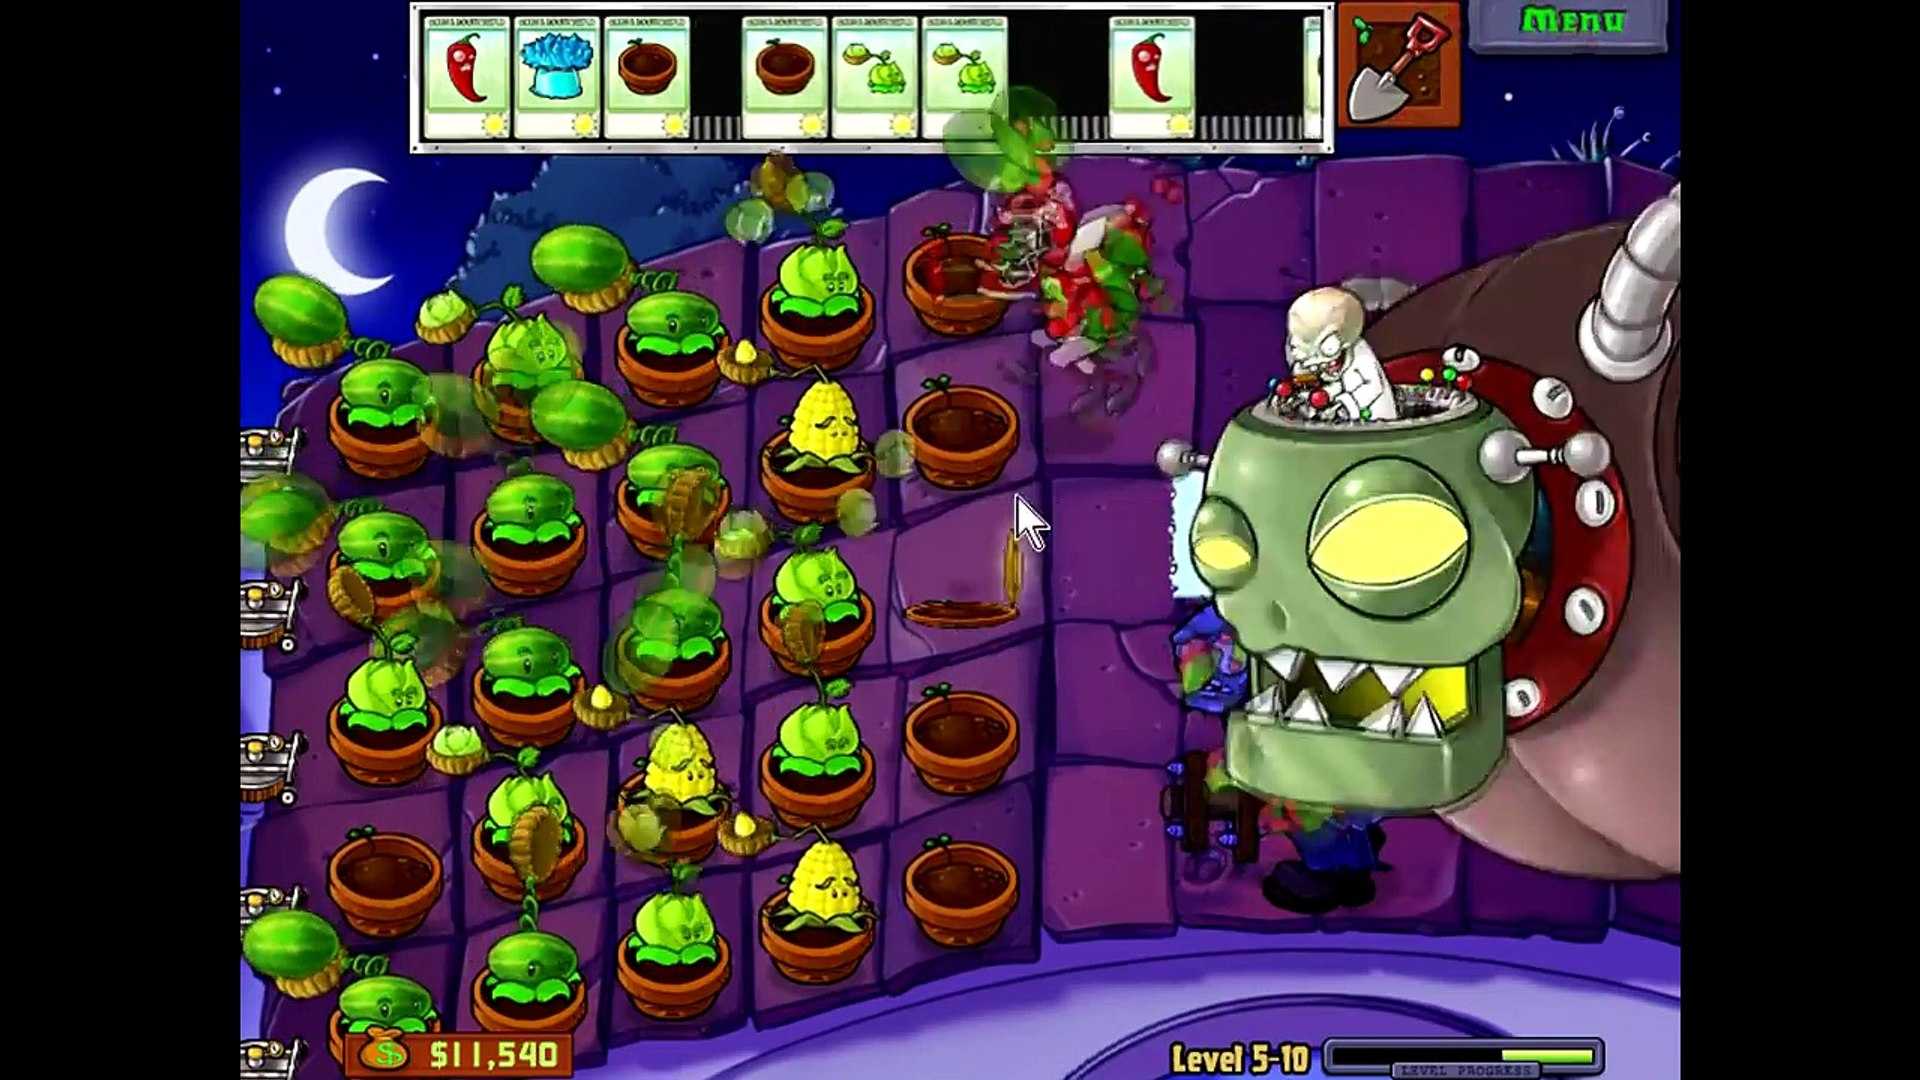 Plants Vs Zombies - Stage 5-10 Final Boss